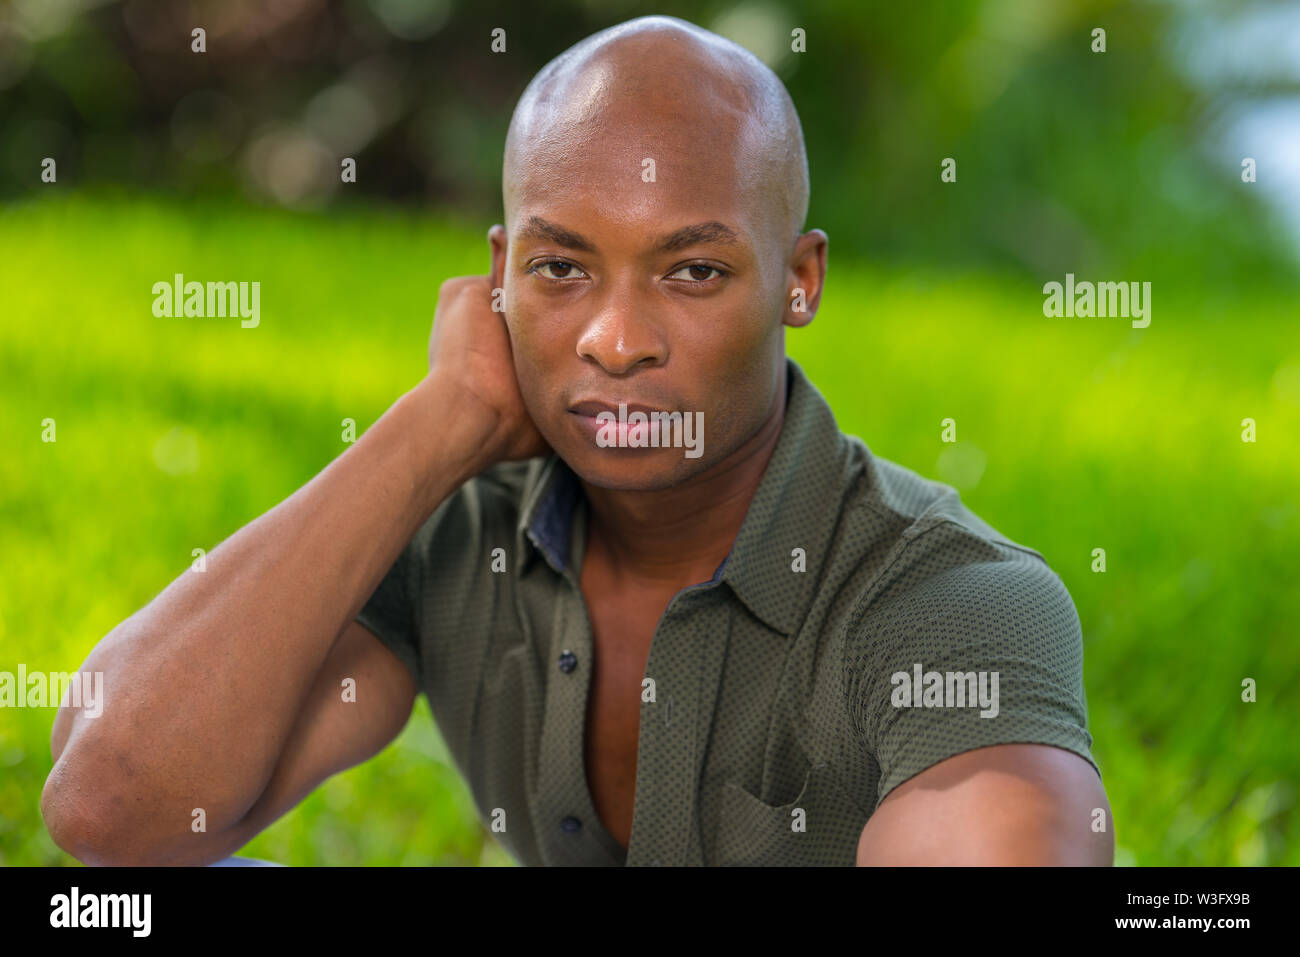 Photo of a handsome man looking at the camera with head resting on his hand. Vibrant green colorful background in the park - Stock Image